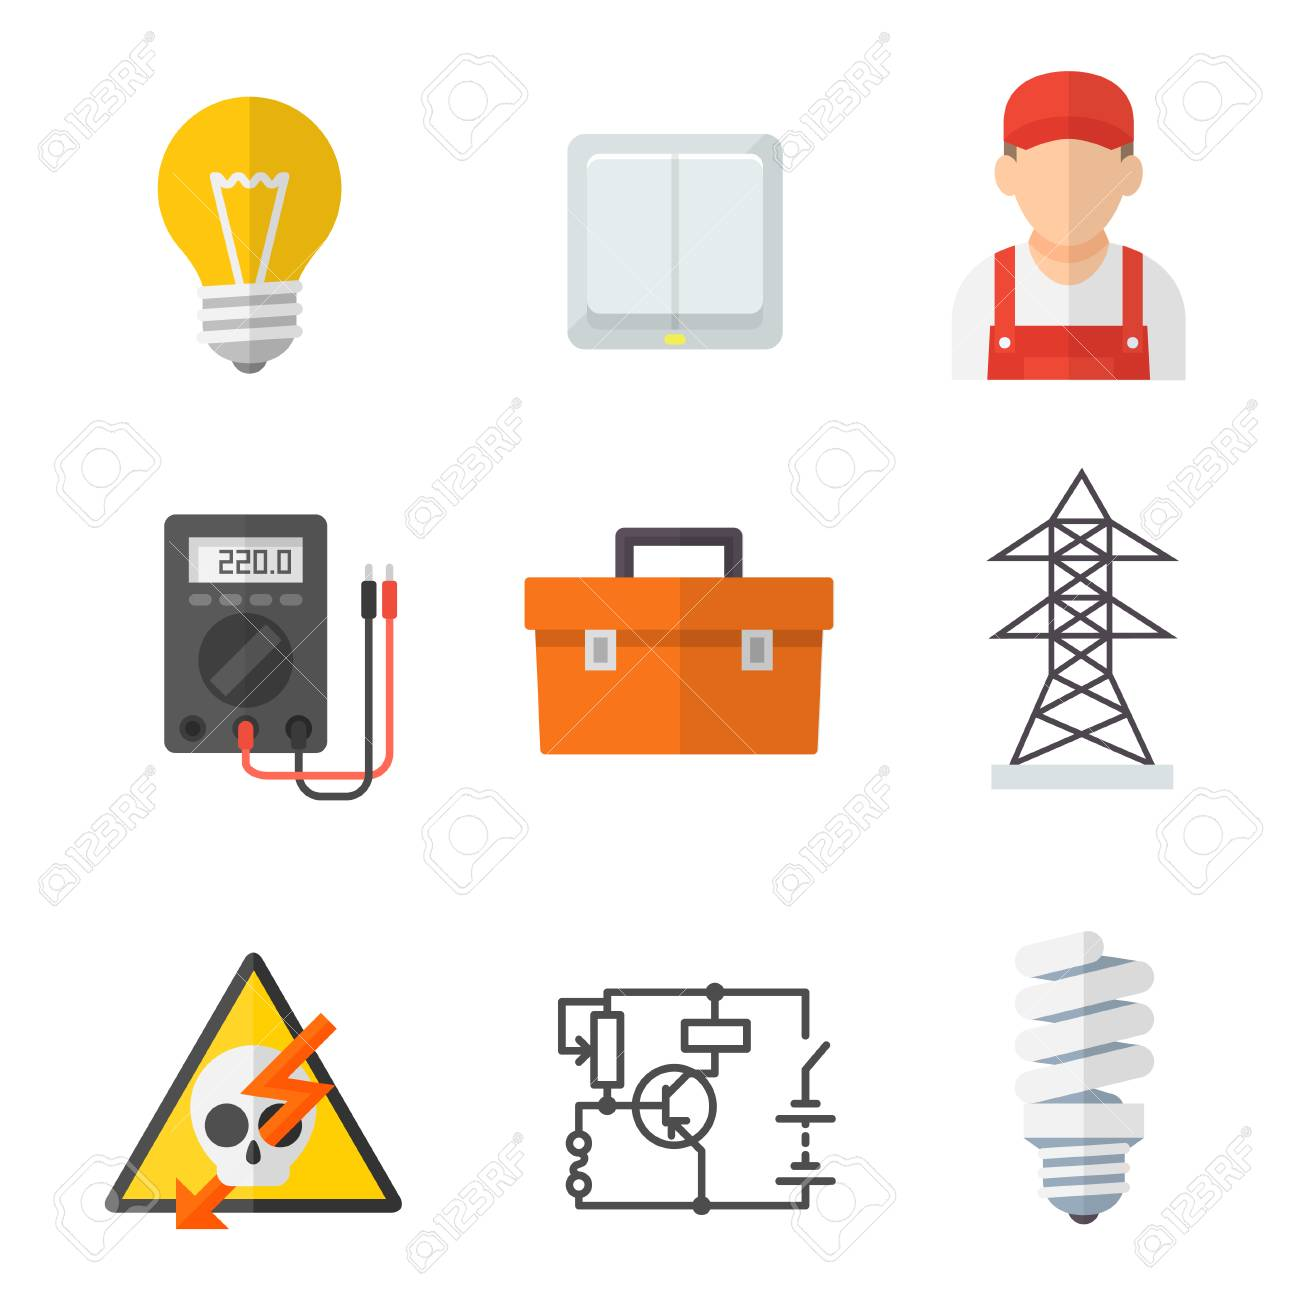 Electrician industry icon cartoon set: Tradesperson, electrical wiring of  buildings, systems and equipment